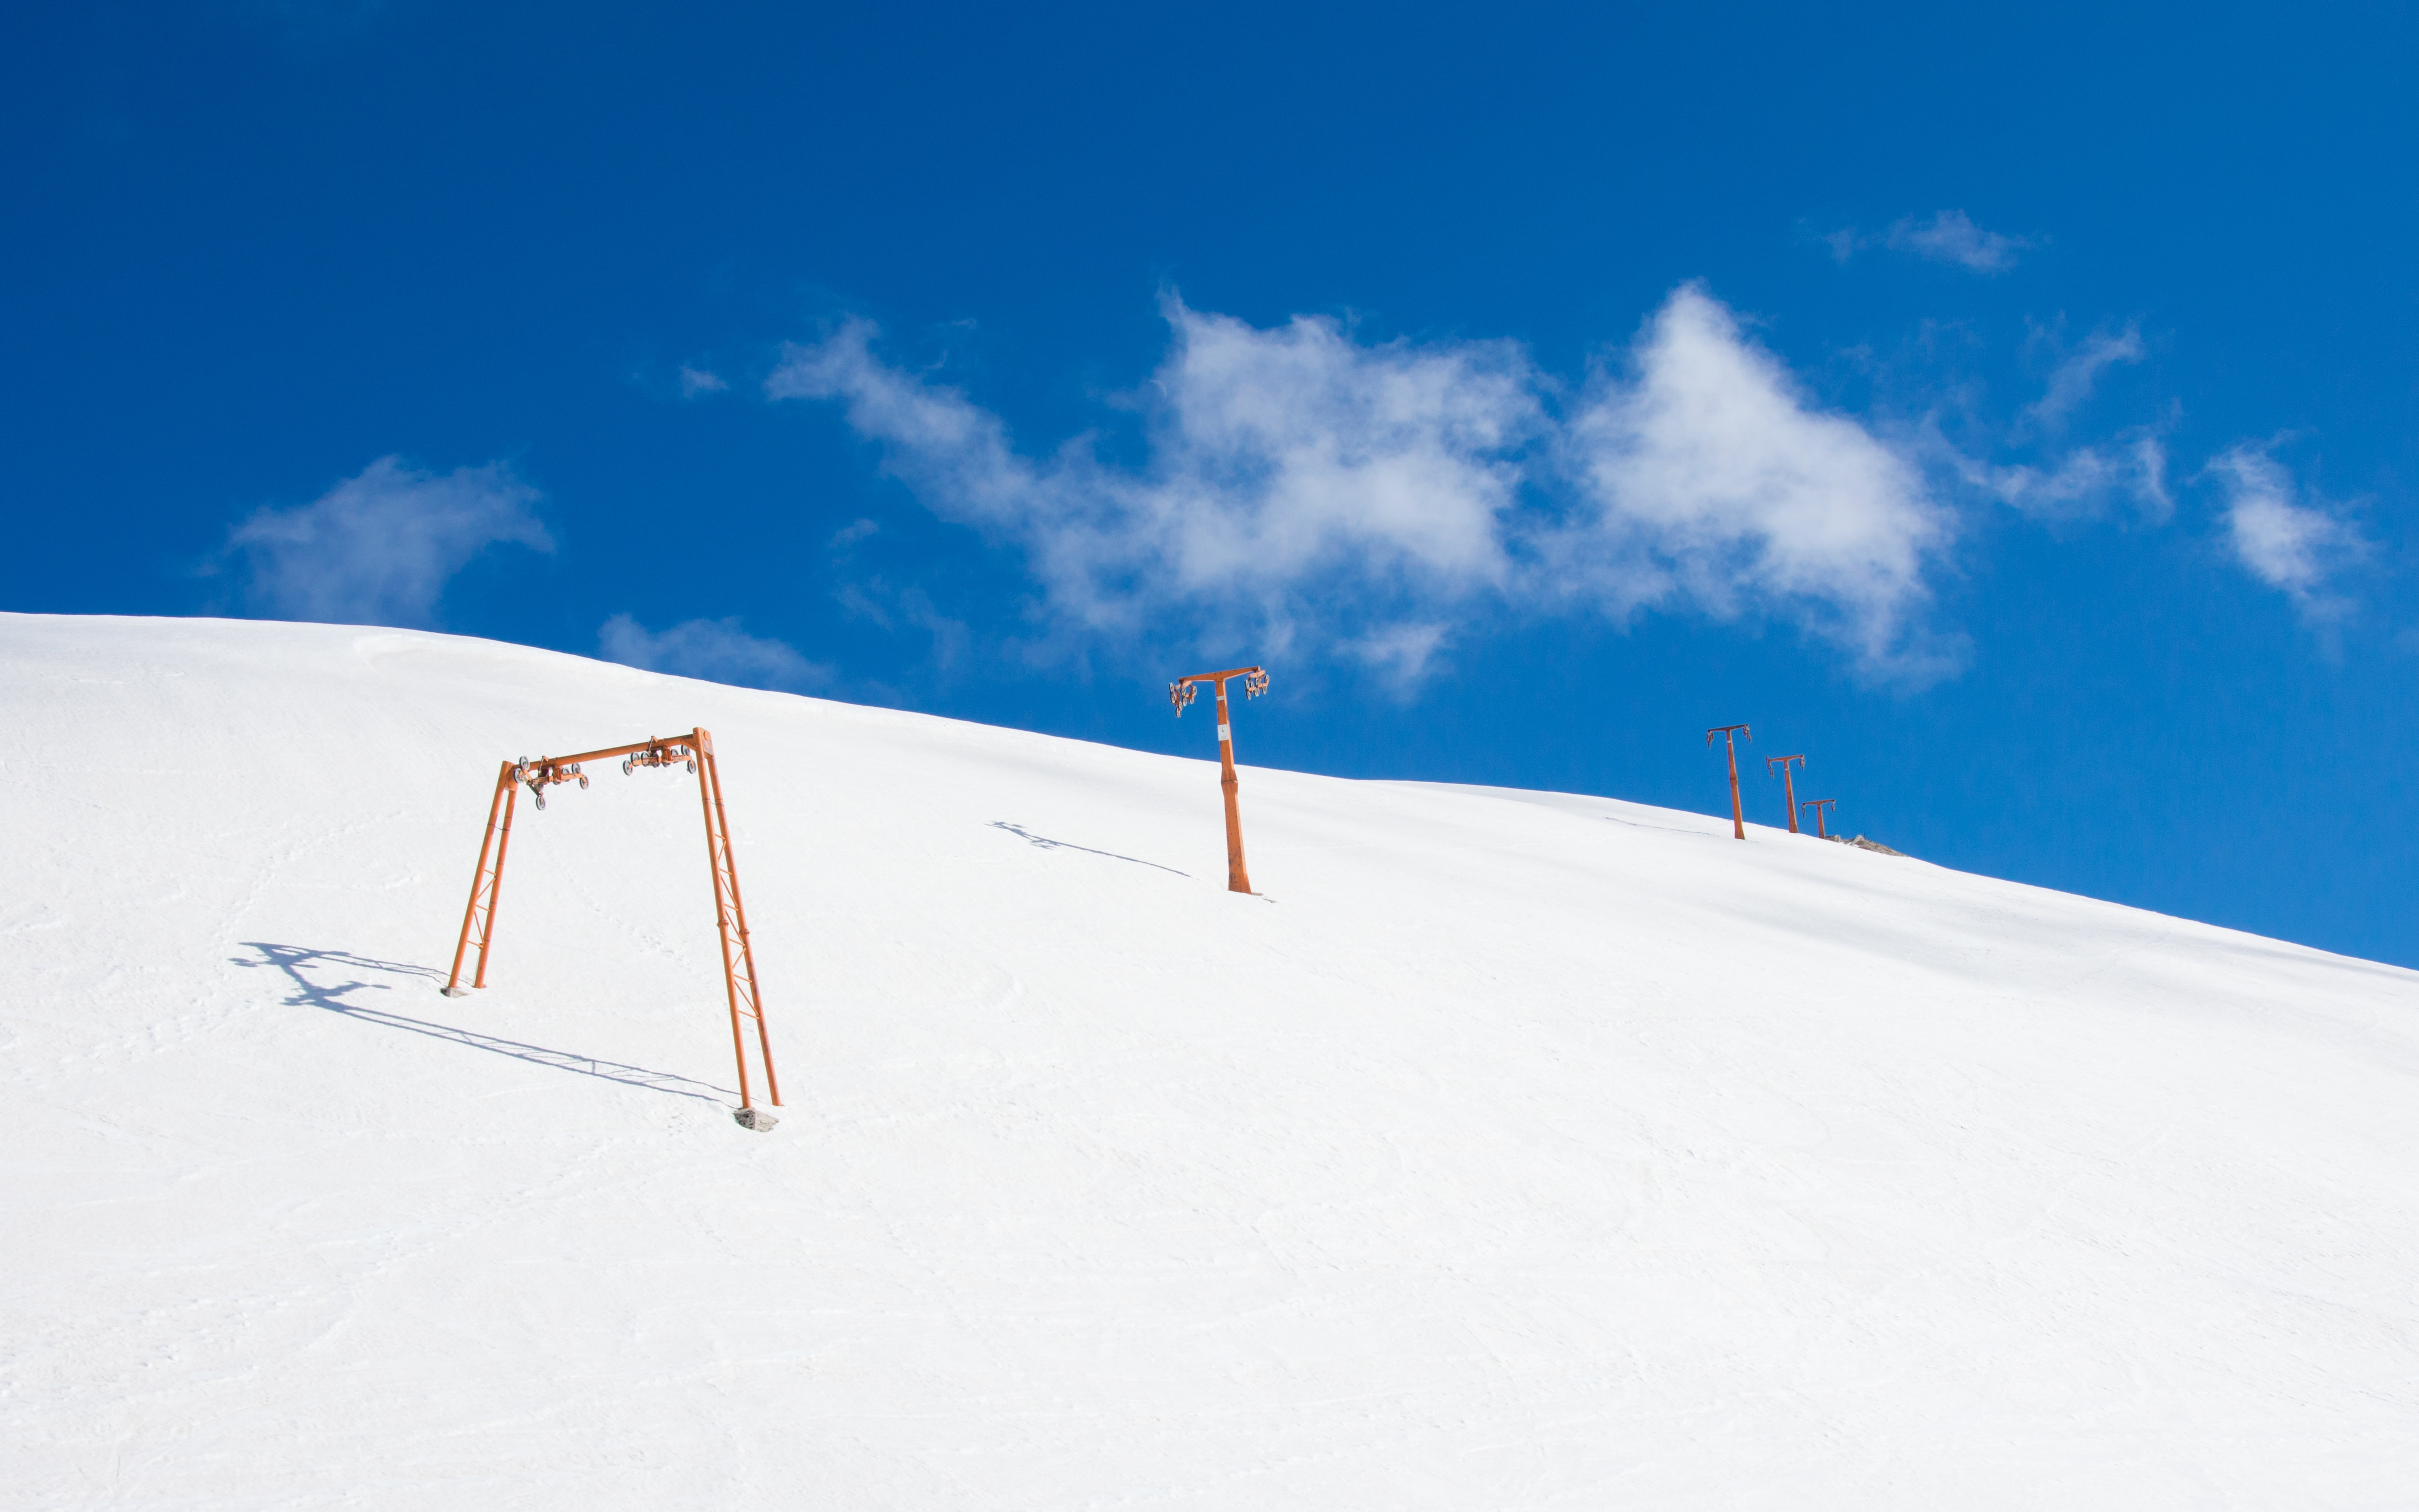 snow mountain with orange pole